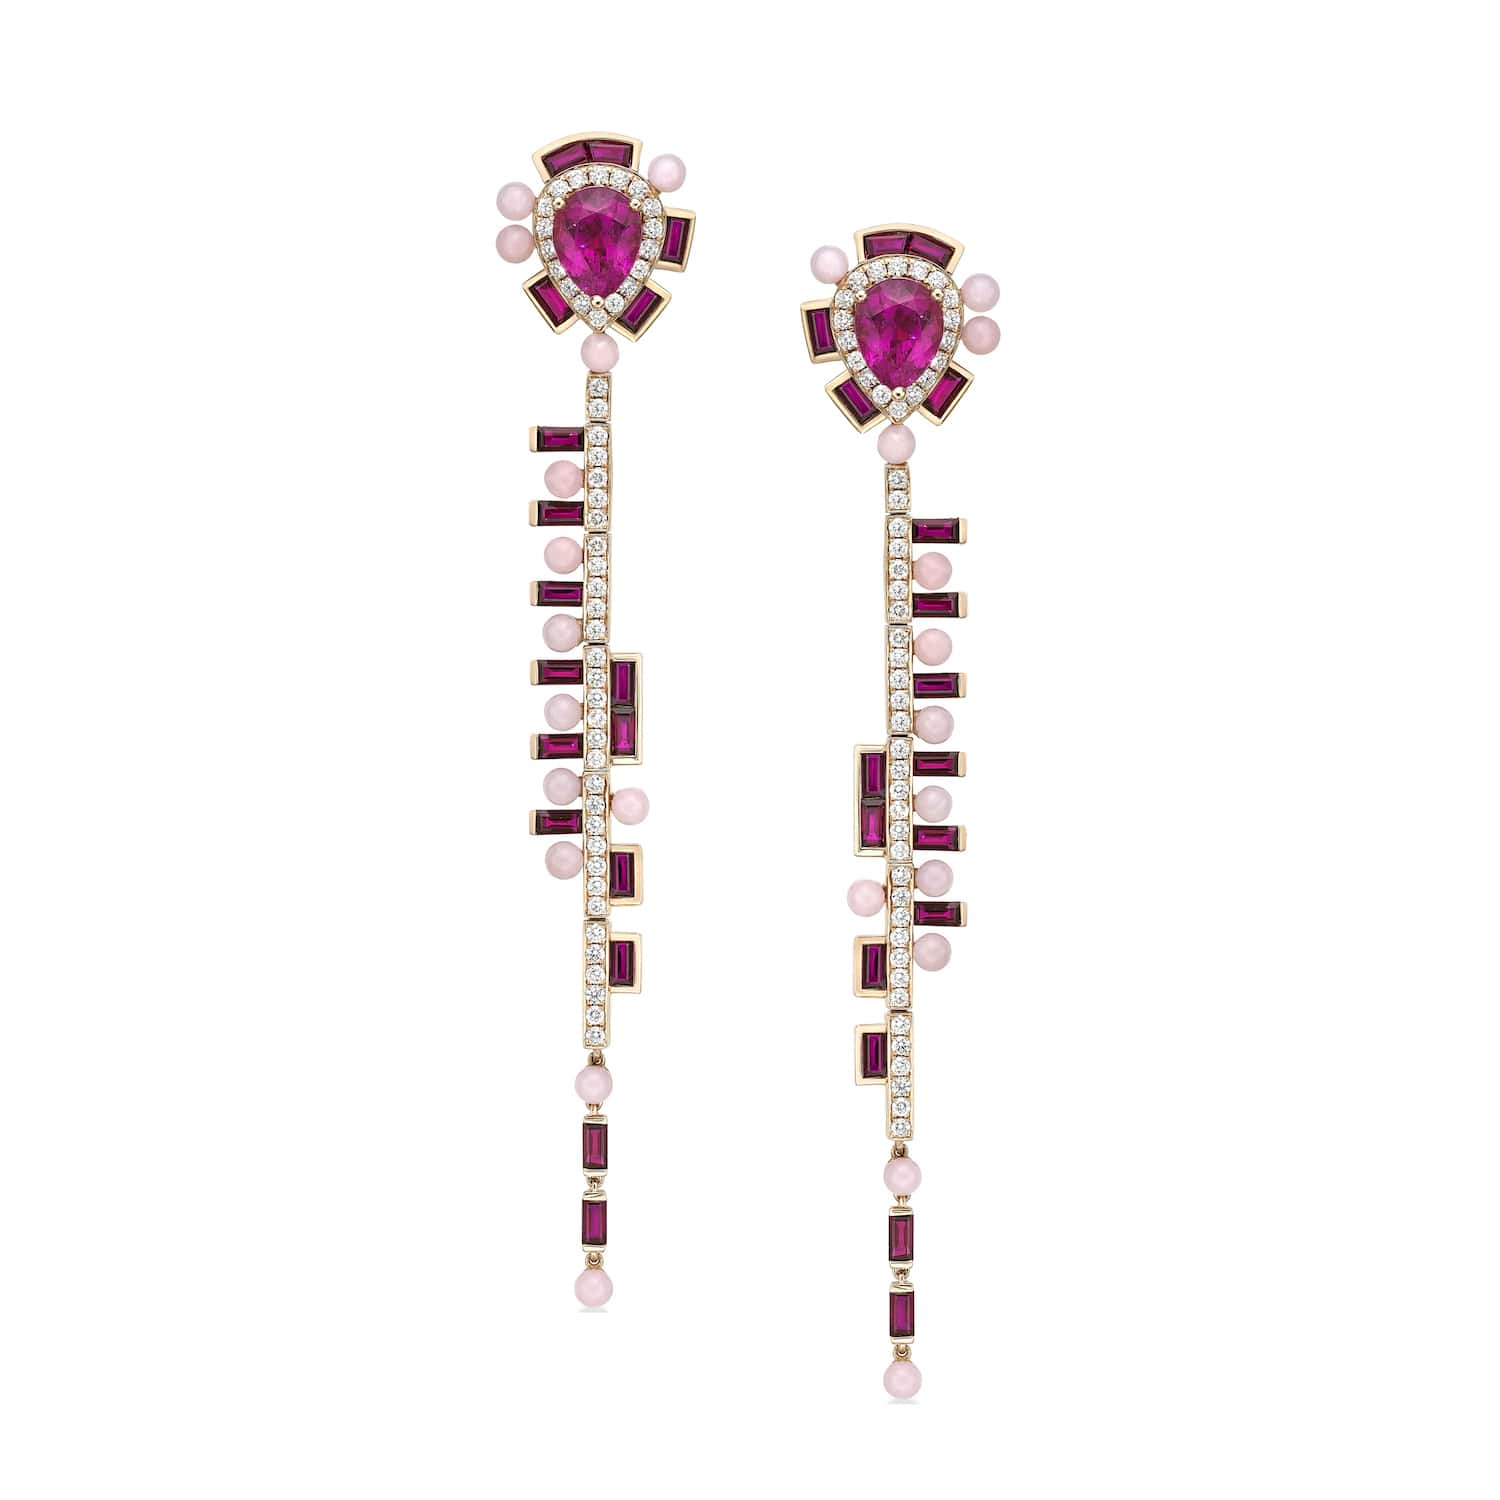 Wisteria-Red-Long-Earrings-18ct-rose-gold-white-diamonds-Rubelite-Ruby-and-Red-opal-Sarah-Ho